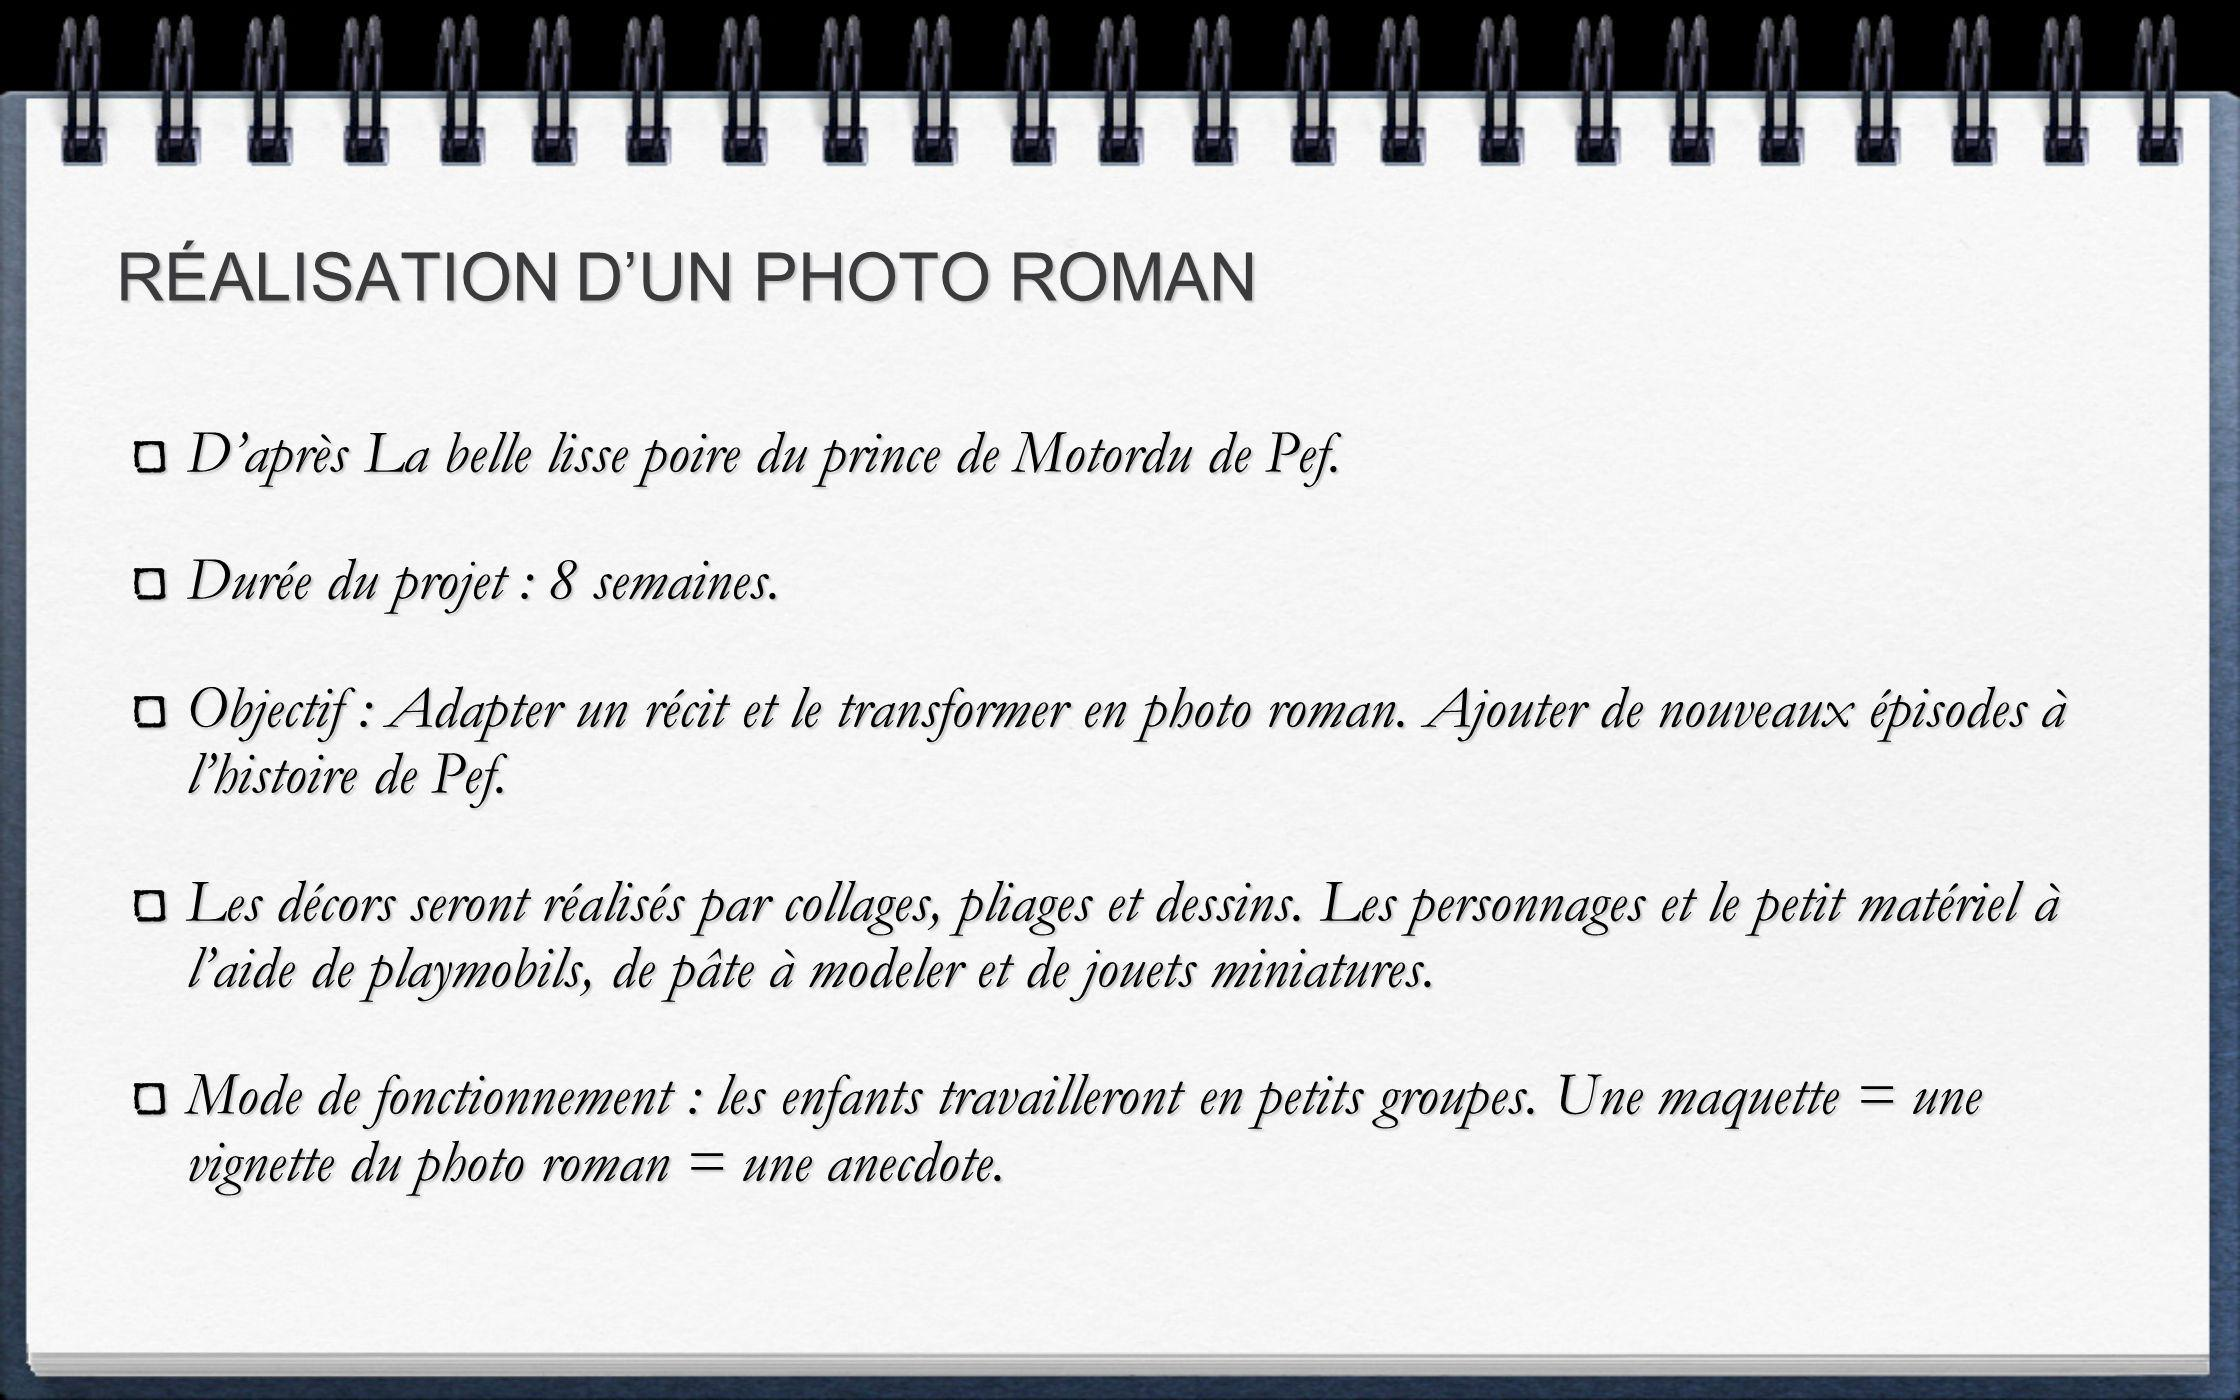 RÉALISATION D'UN PHOTO ROMAN